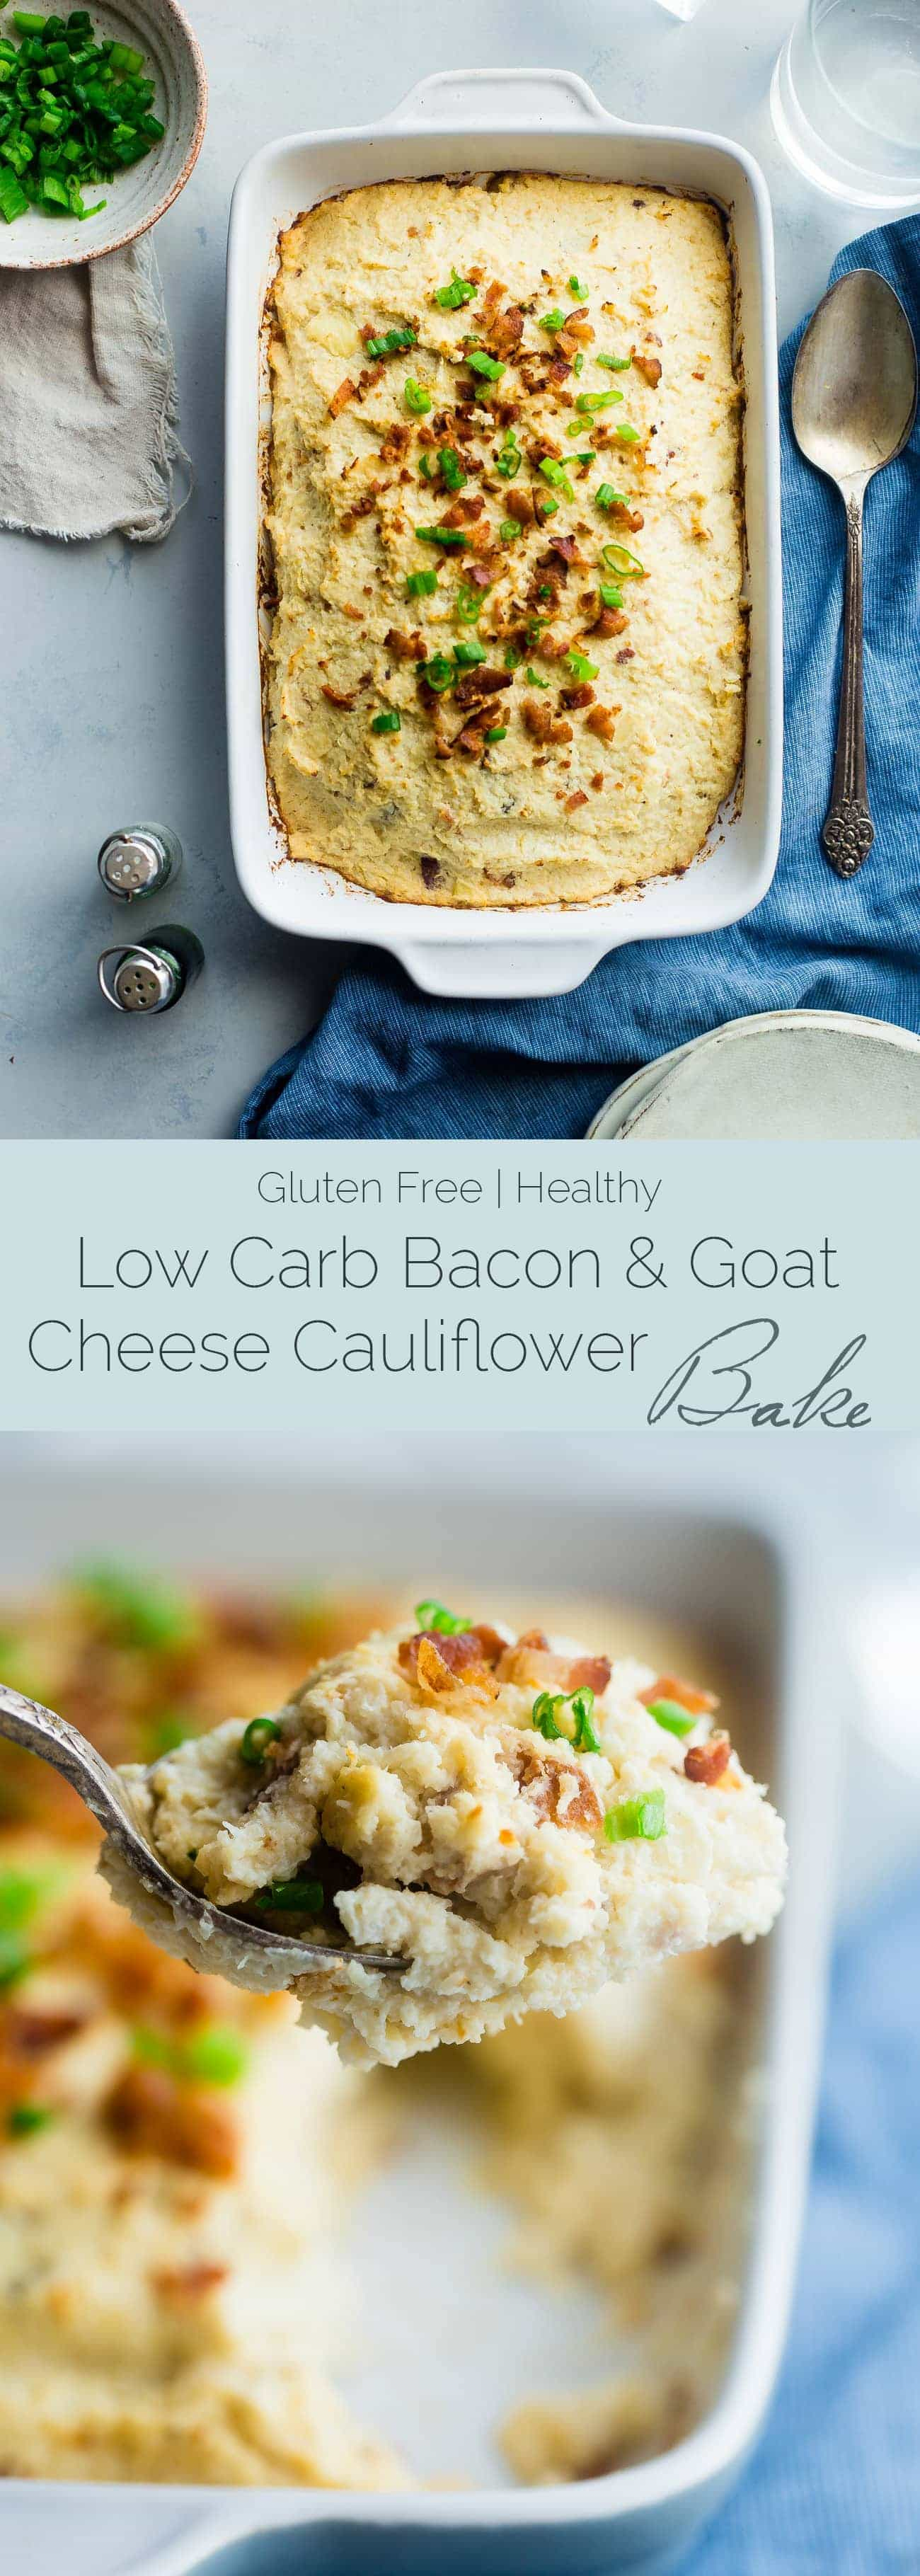 Low Carb Bacon and Goat Cheese Cauliflower Bake - This baked cauliflower is SO creamy and no one ever knows it's made of veggies. You would never guess it's an easy, healthy, low carb and gluten free side dish that even kids love! | Foodfaithfitness.com | @FoodFaithFit